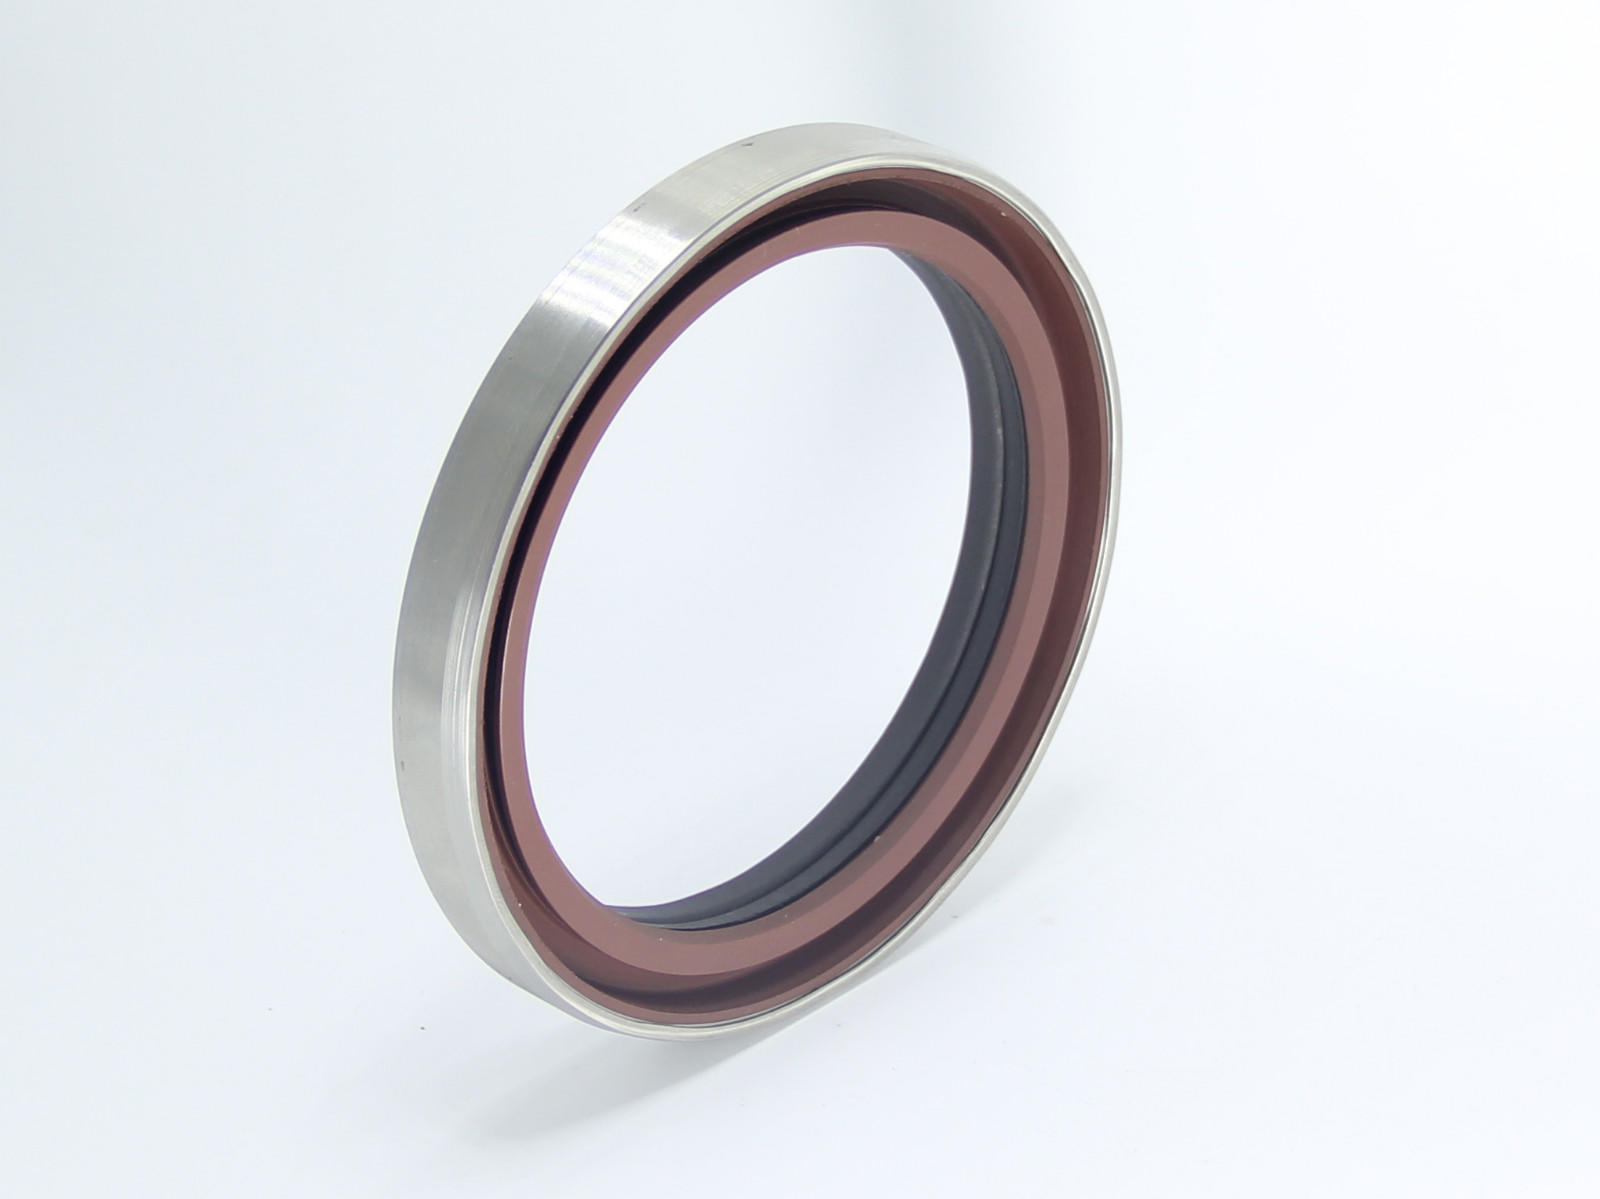 seal oil seal manufacturers manufacturer for pneumatic industry